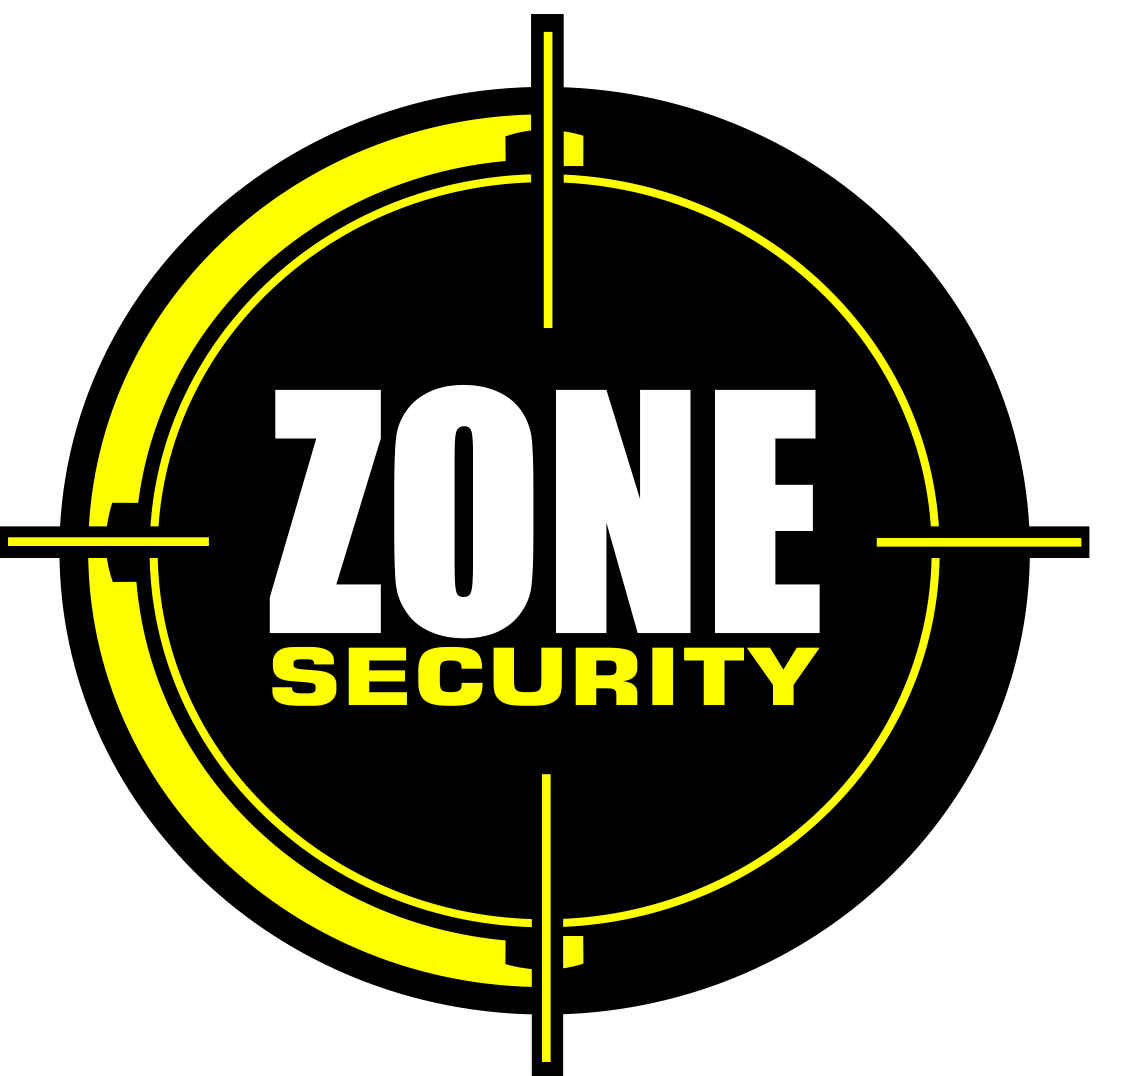 Zone Security